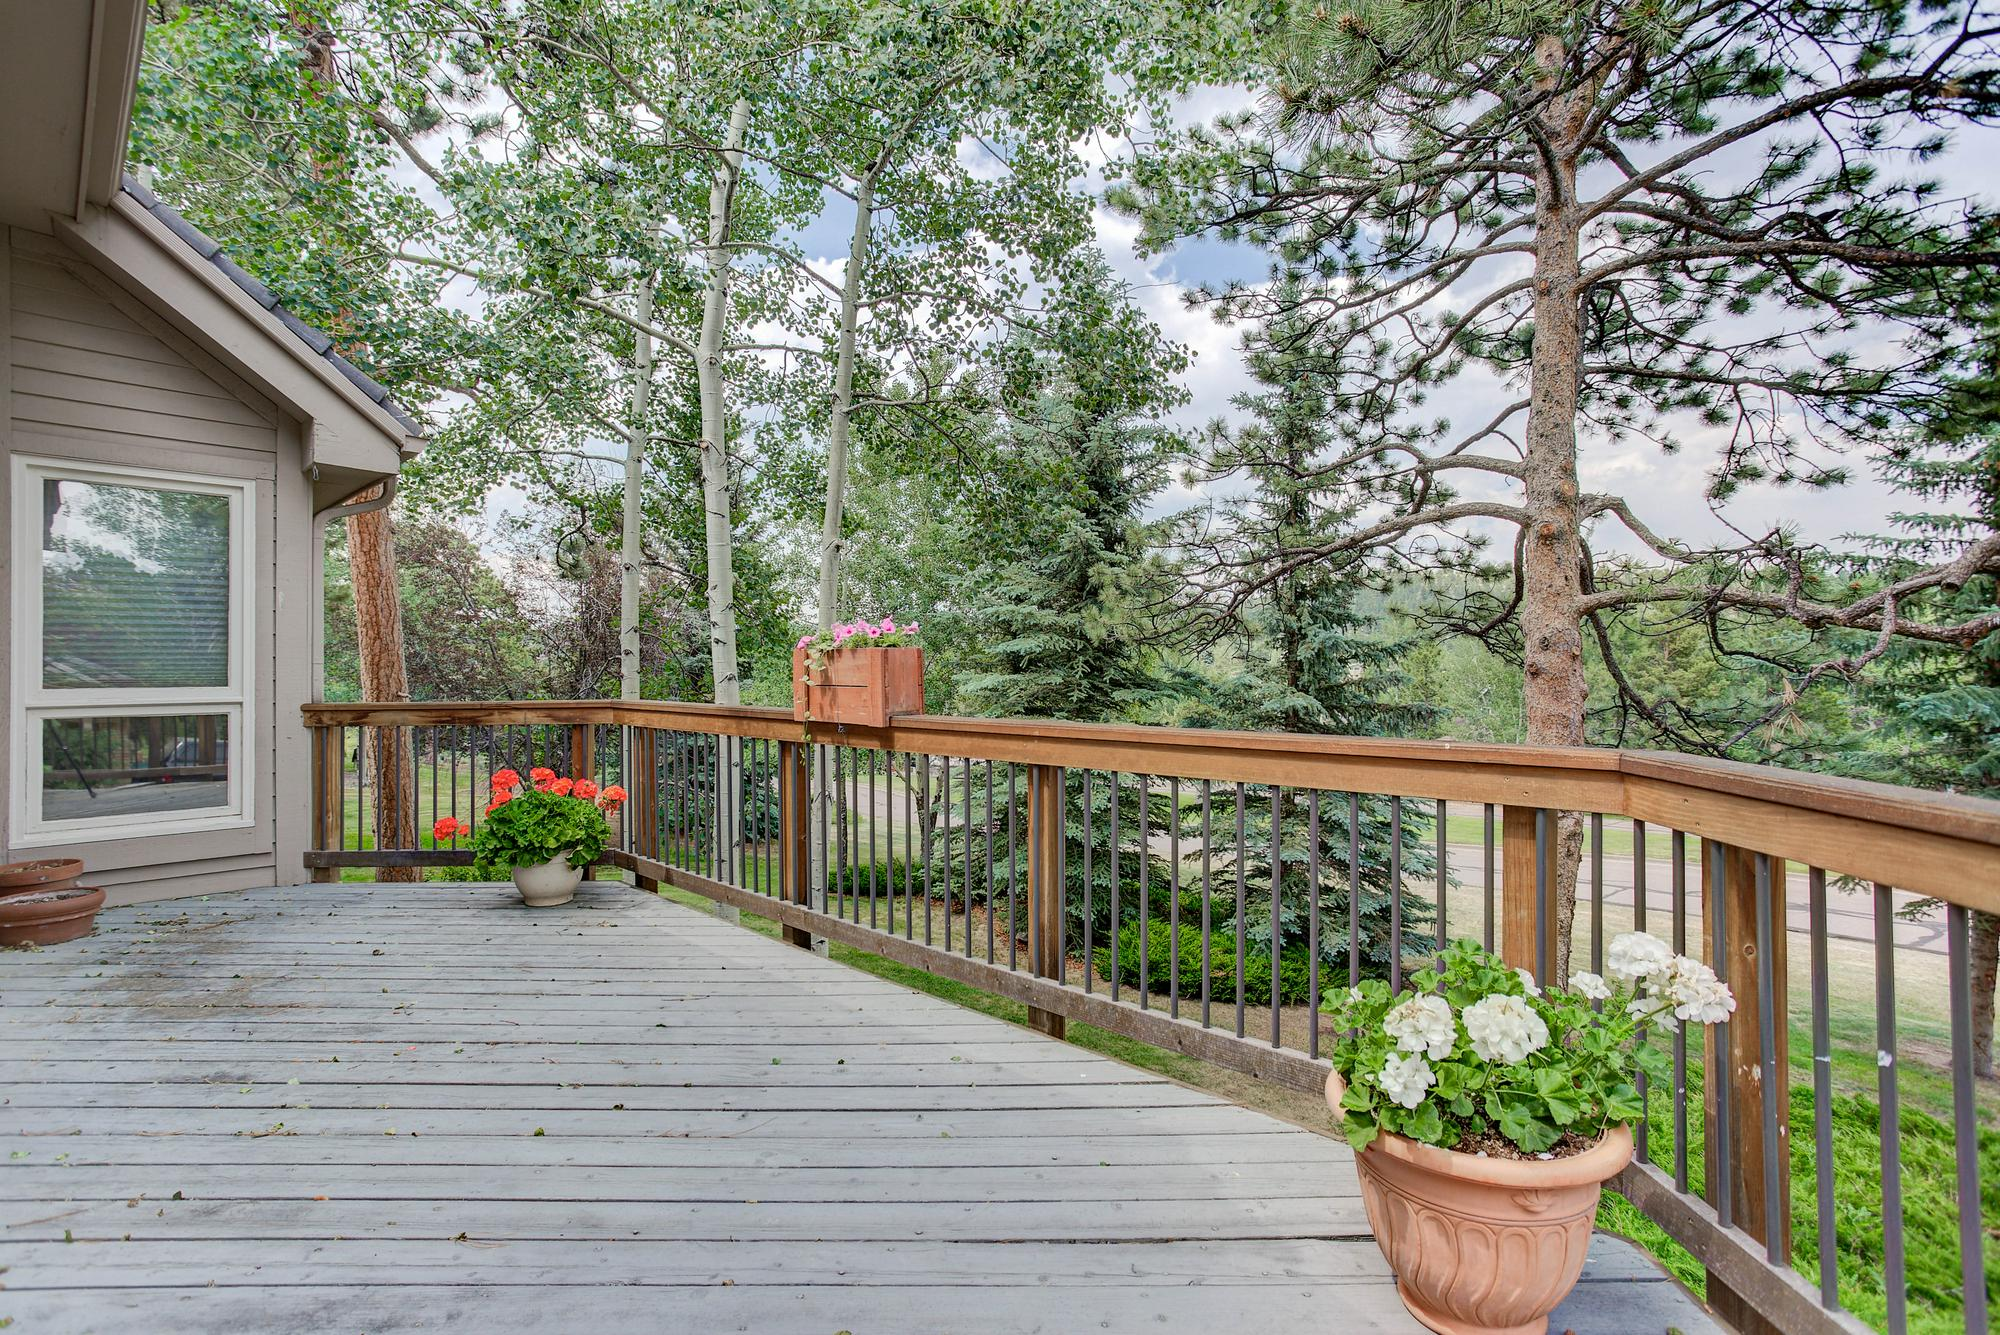 Listassistimage-160432-web_ready-31628%2bgallery%2blane_backdeck-2000x2000